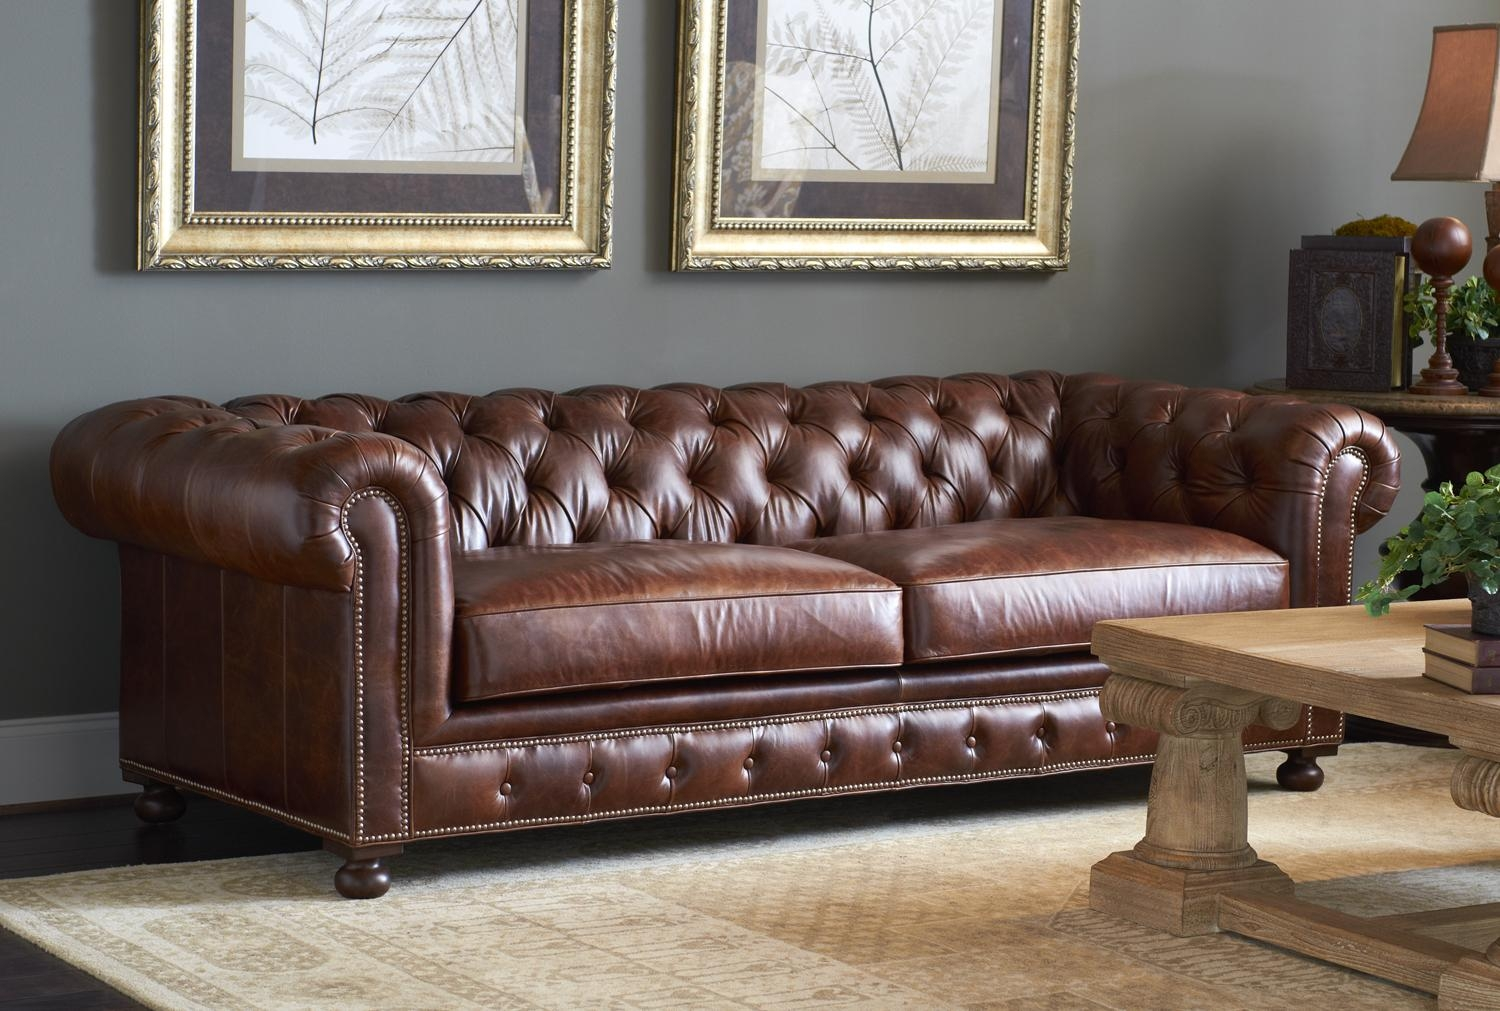 Leather Sofa Tufted Regarding Brown Leather Tufted Sofas (View 8 of 20)